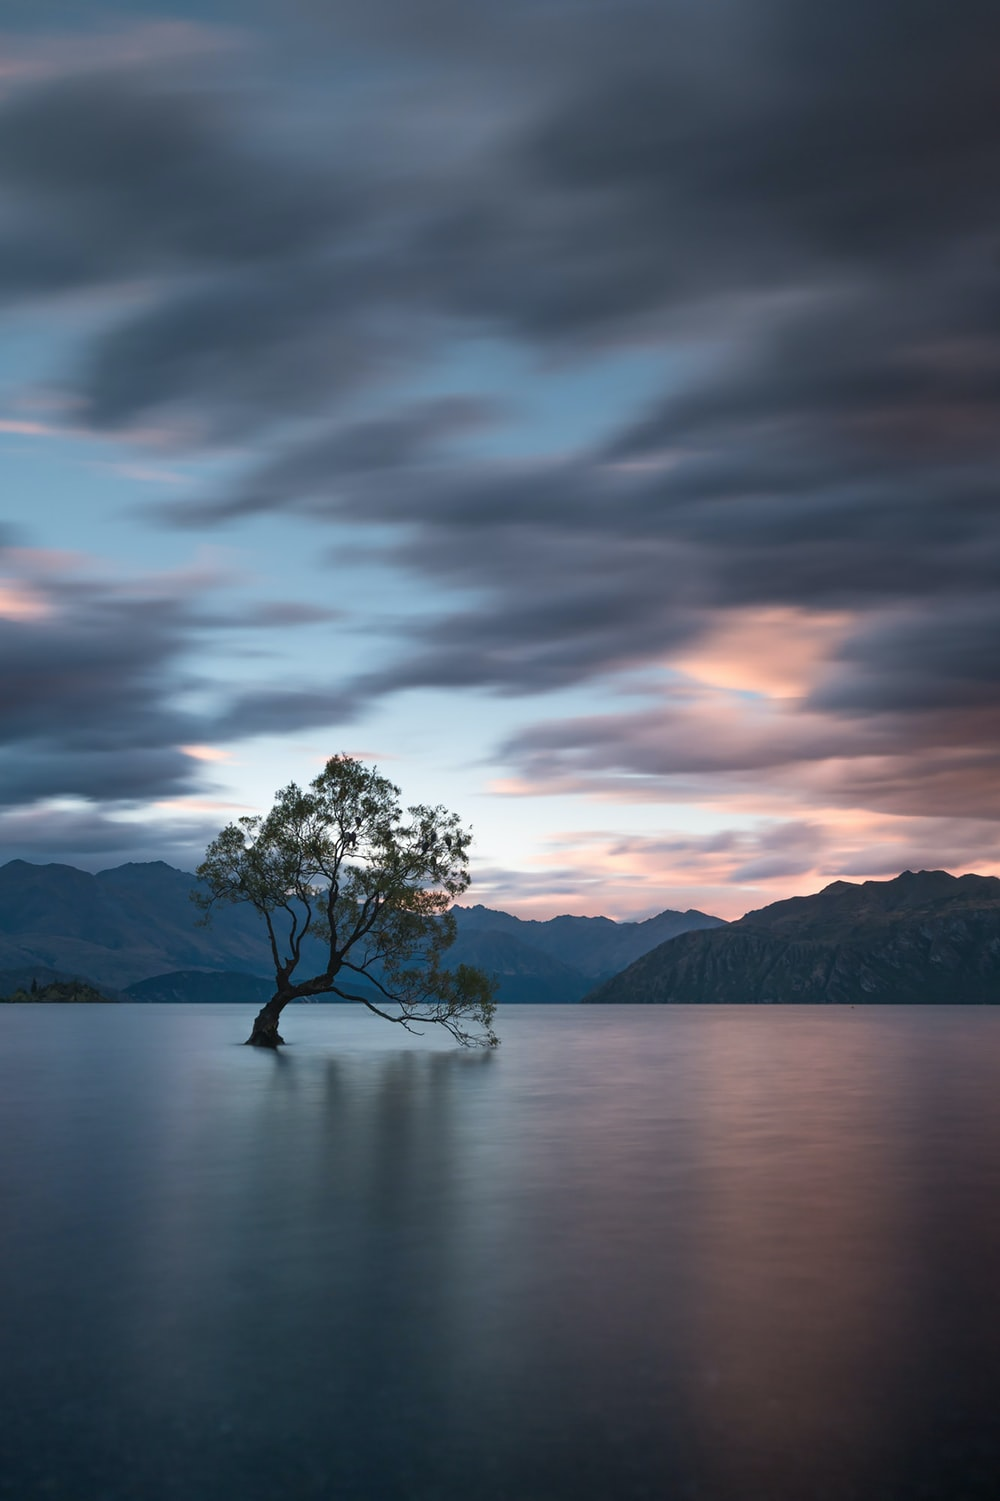 tree on body of water under cloudy sky during daytime